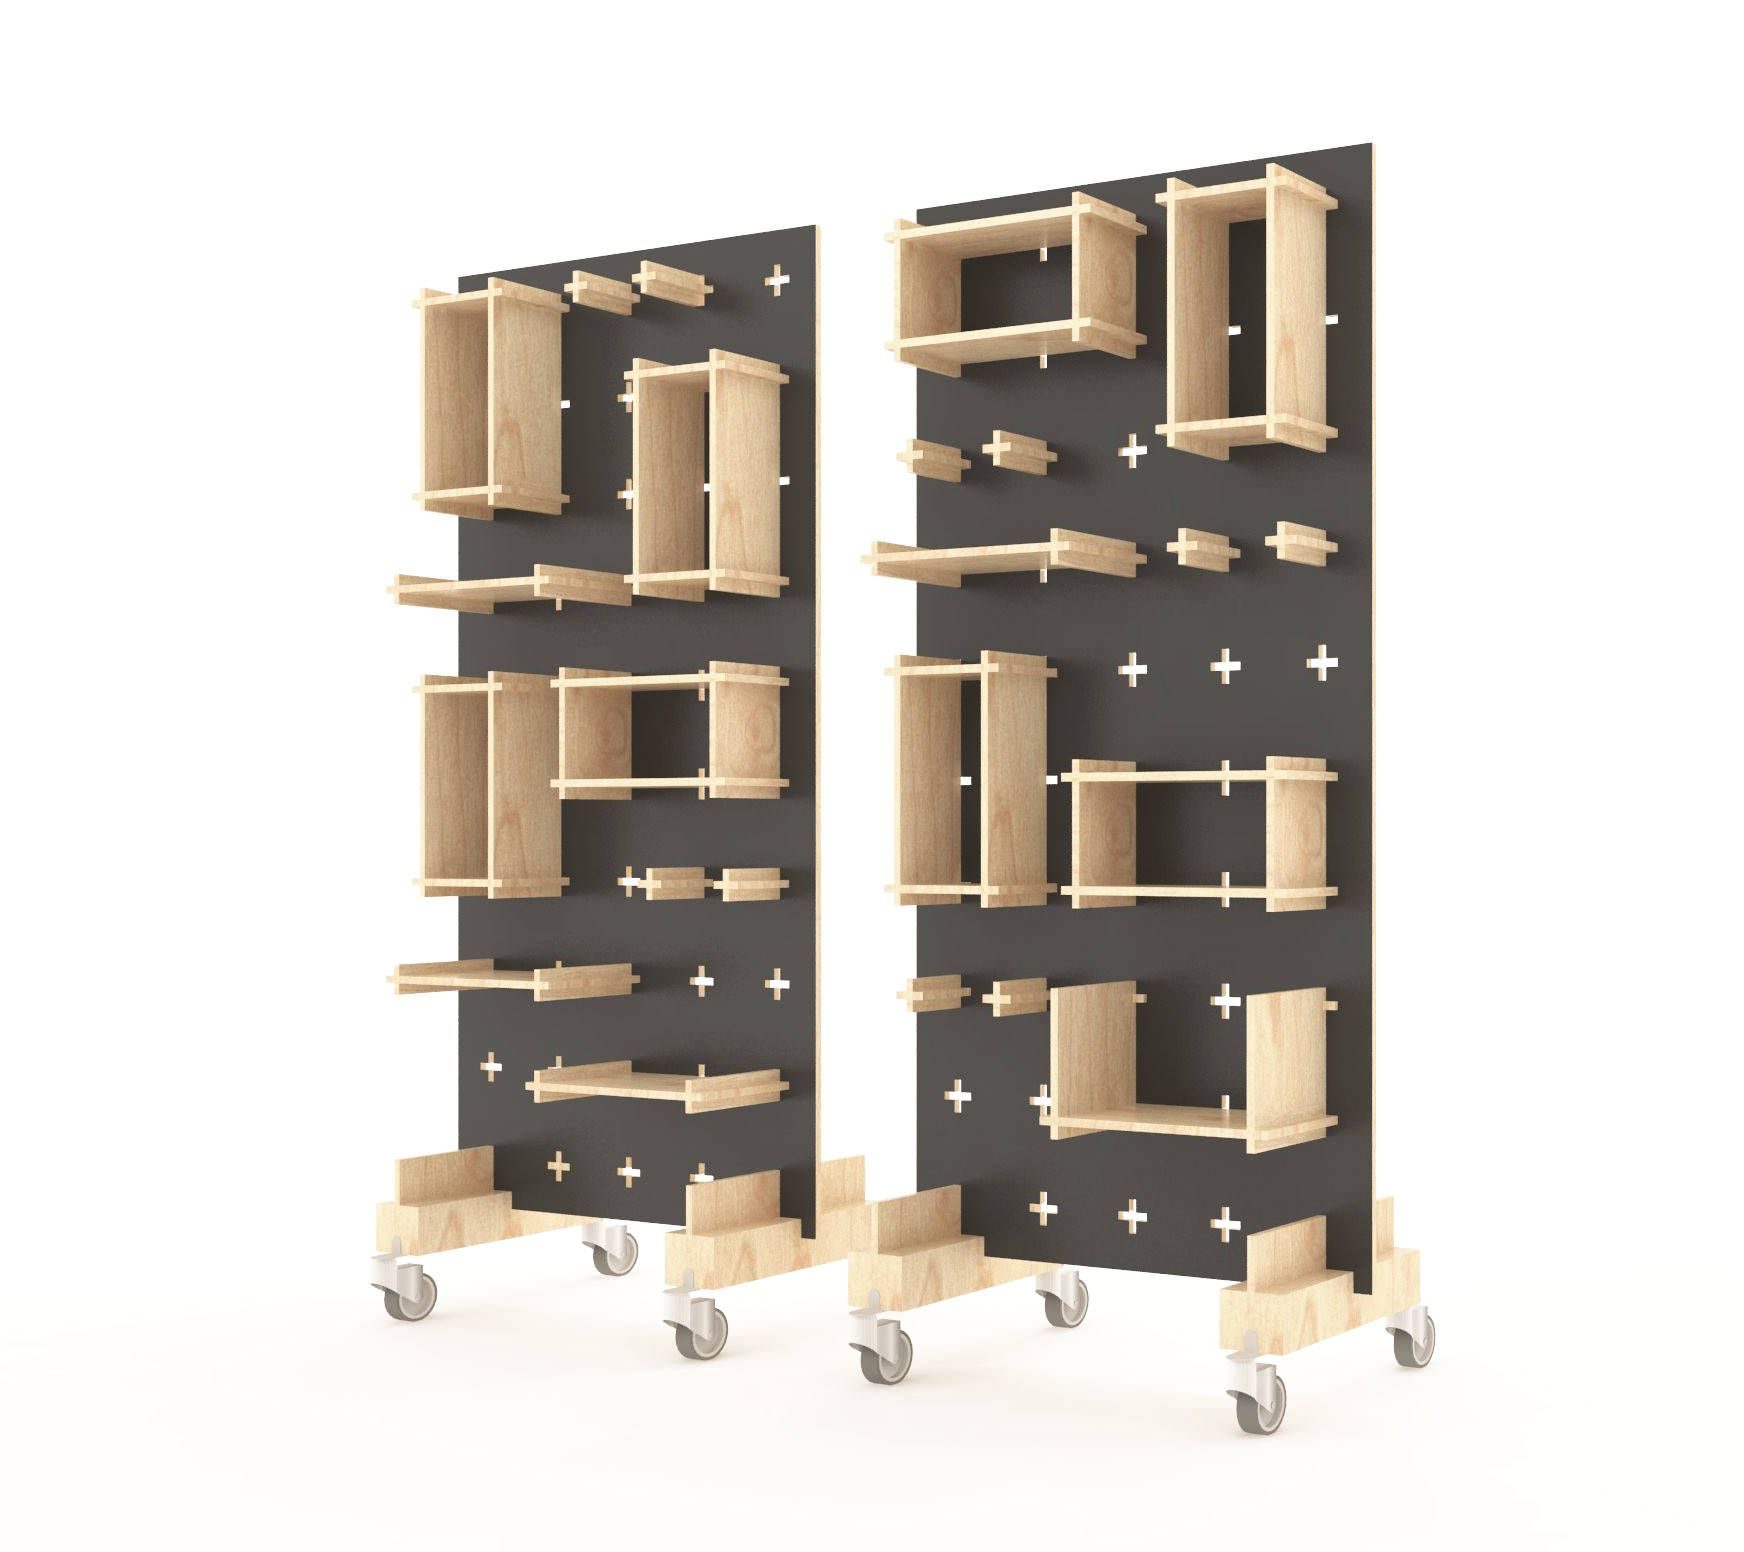 Display Stand, Pegboard, Plywood Wall System Consists Of Functional Wall